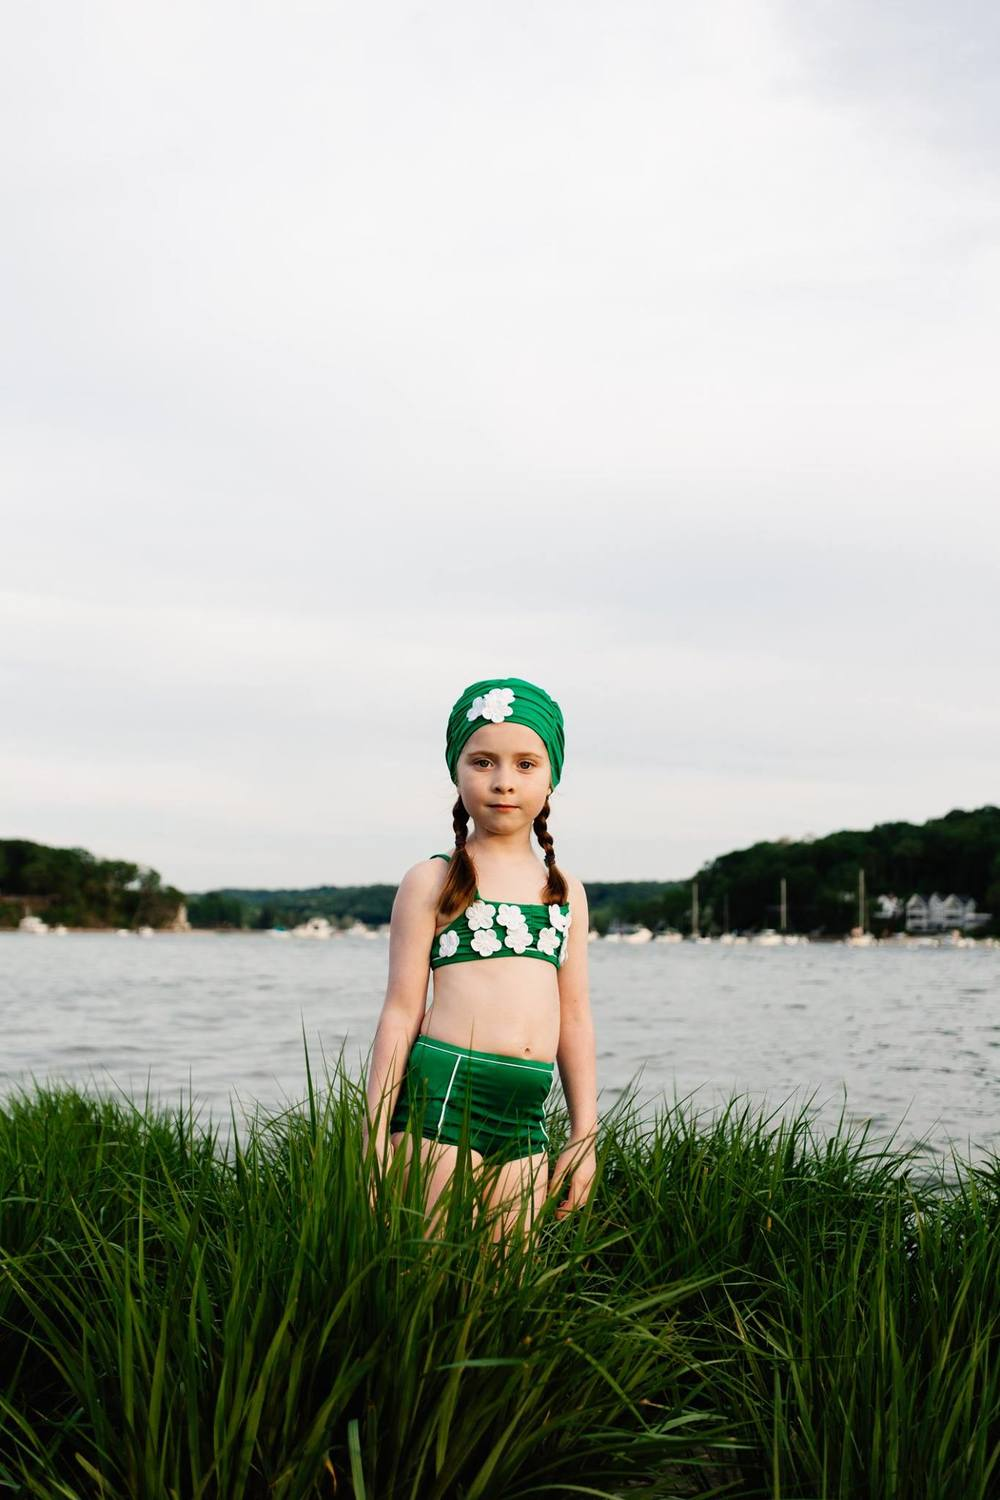 Ava | Jennifer Tippett Photography